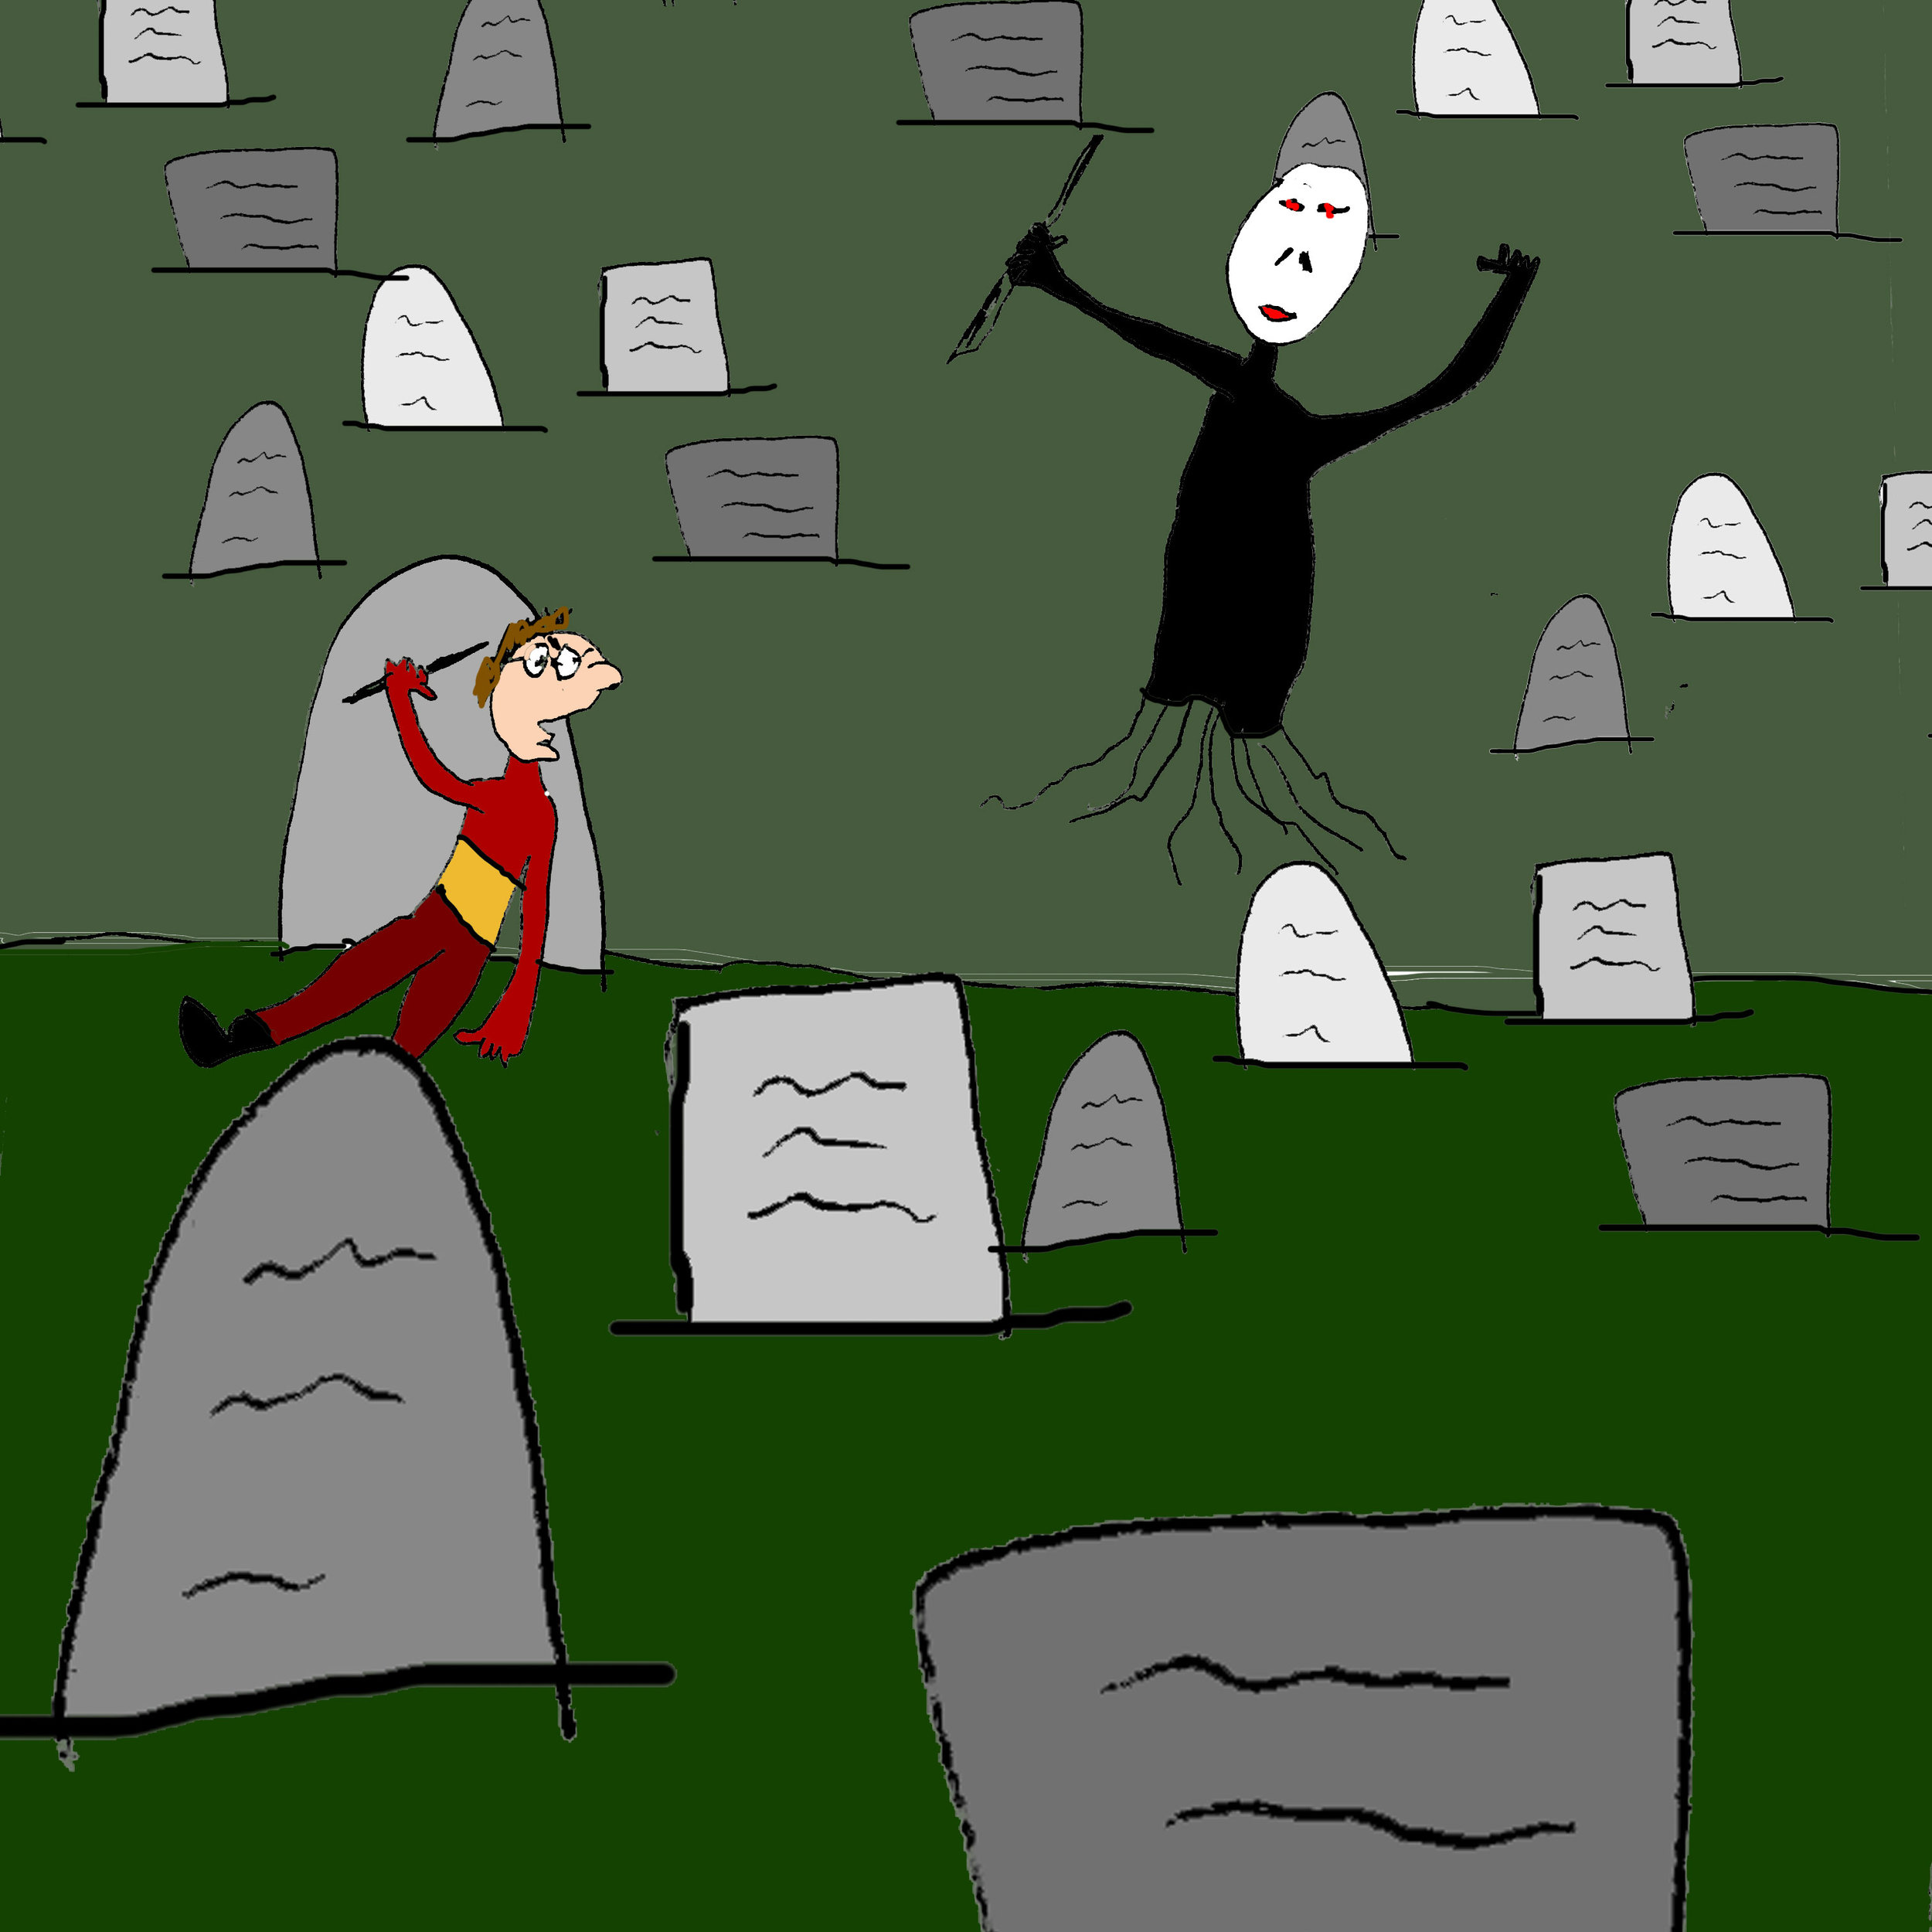 Harry and Voldemort fight in the graveyard